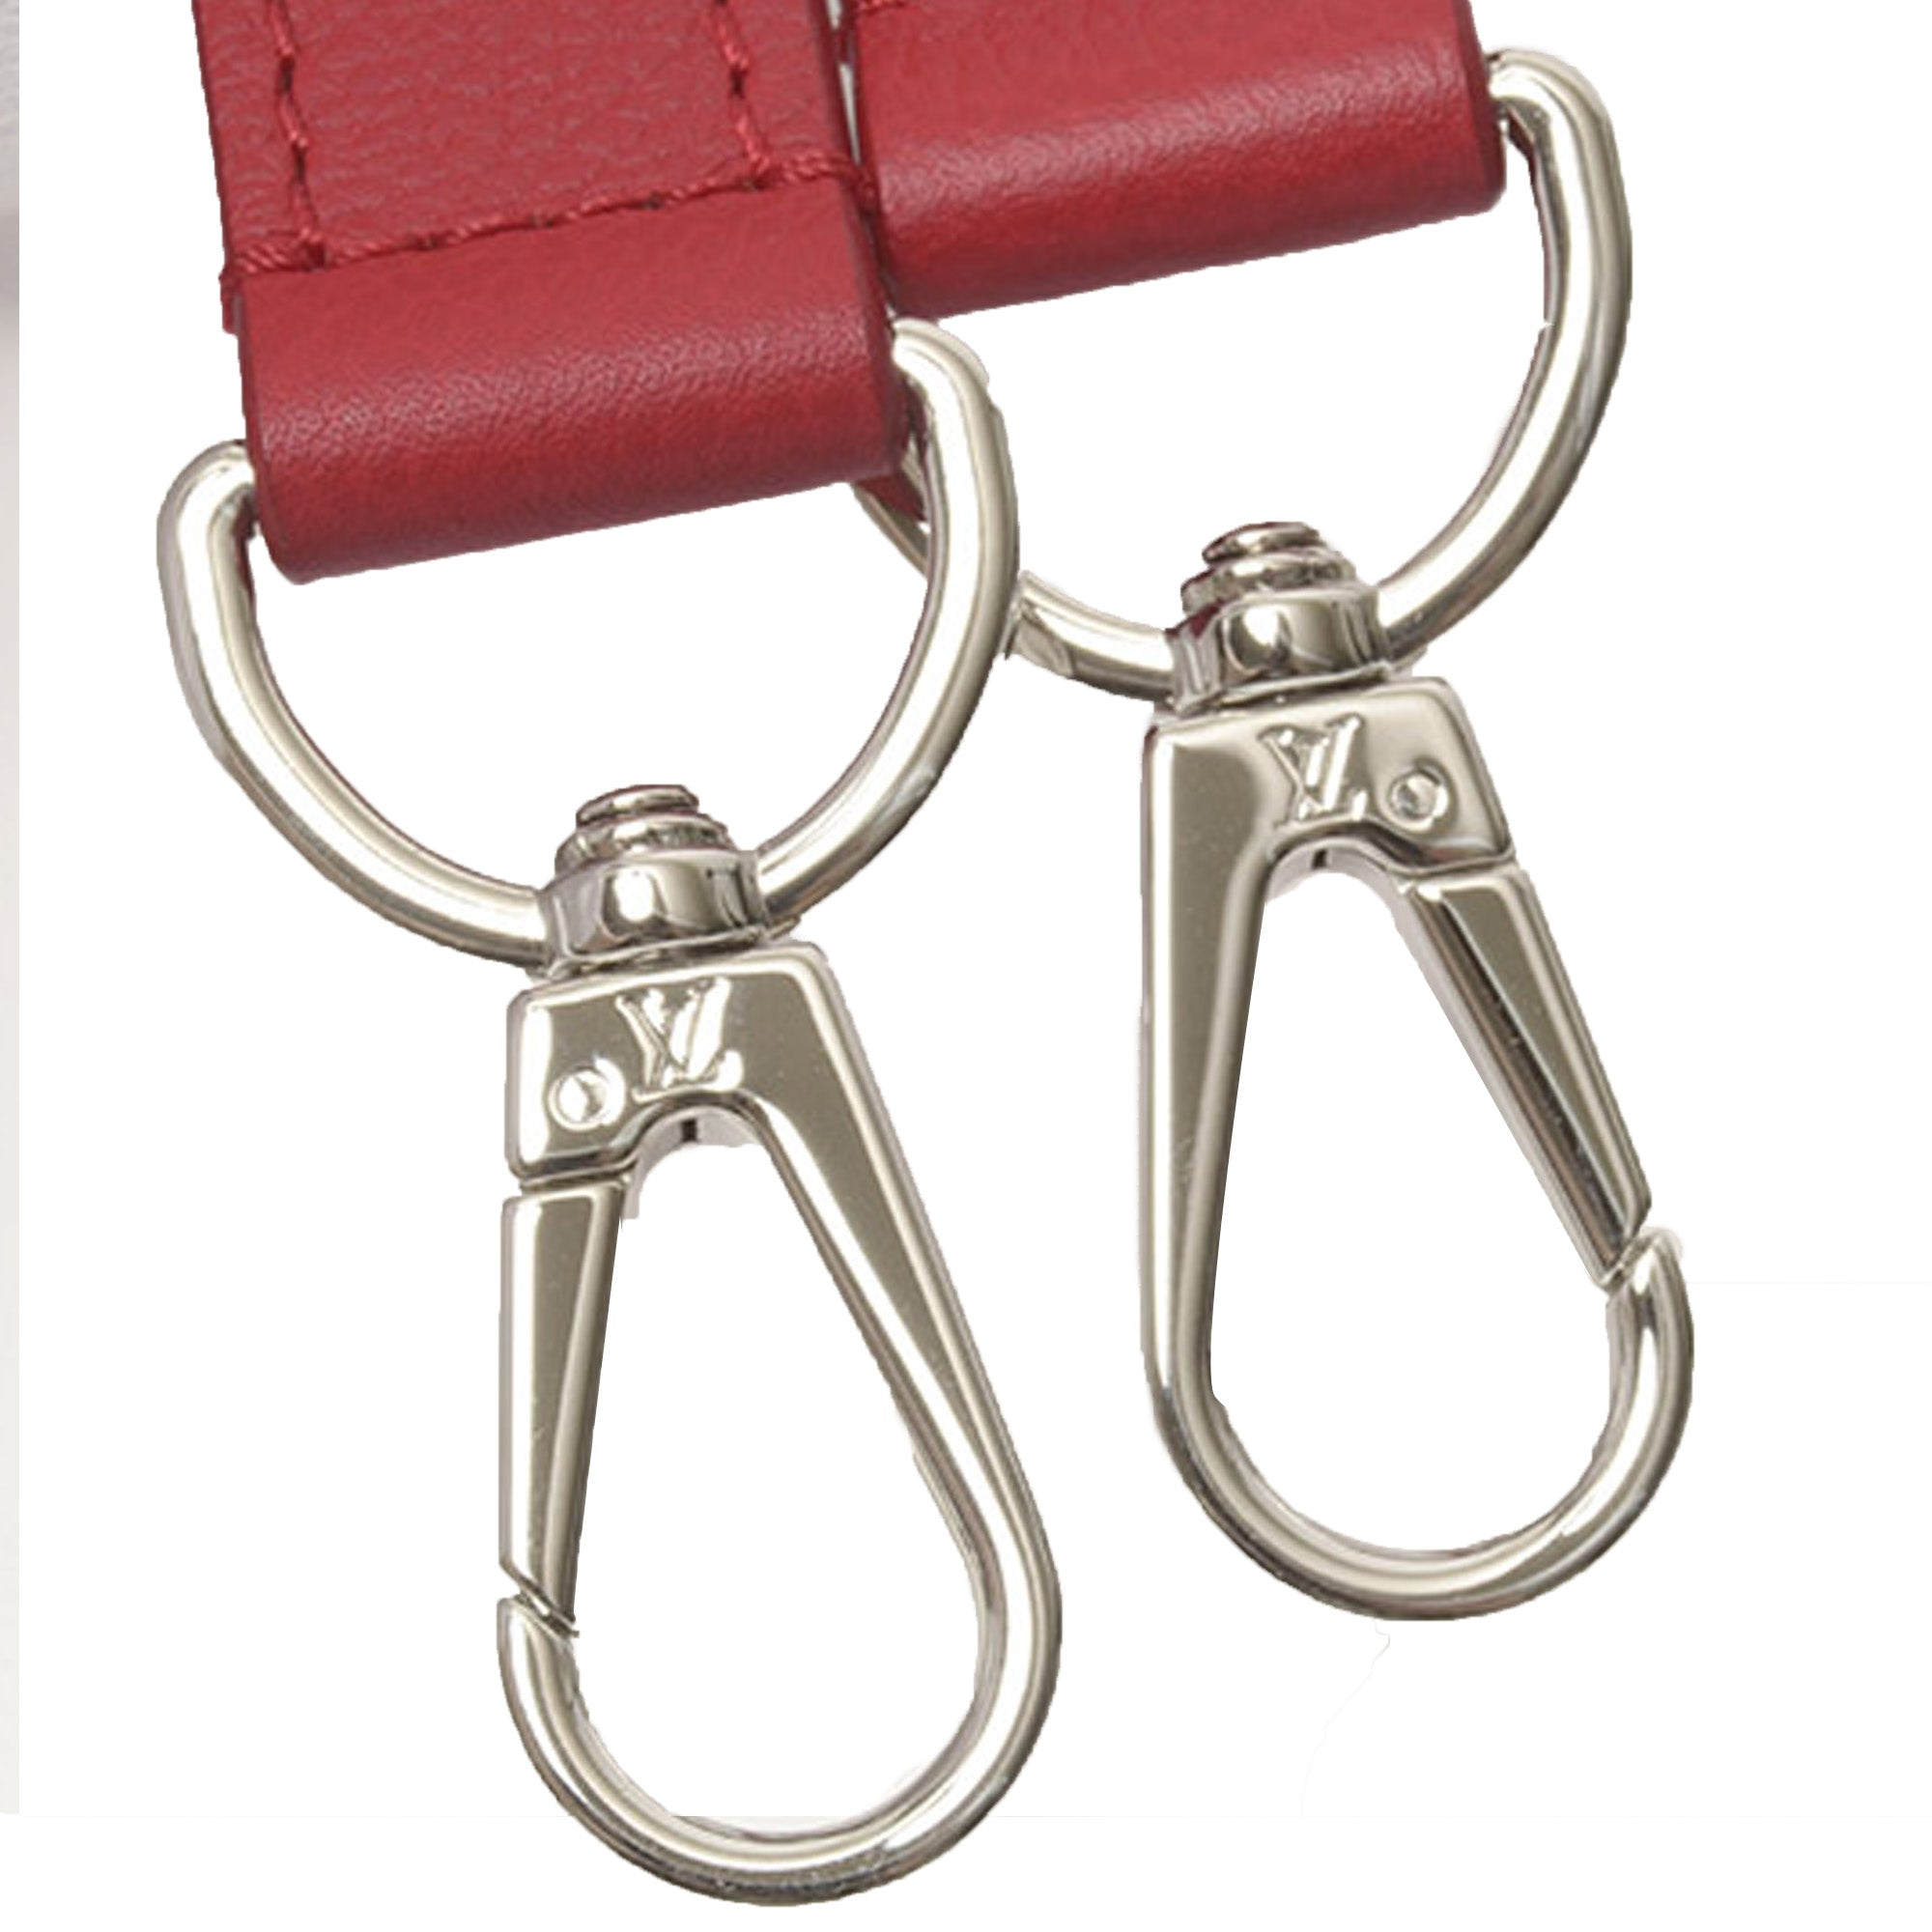 Louis Vuitton Red Leather Adjustable Shoulder Strap